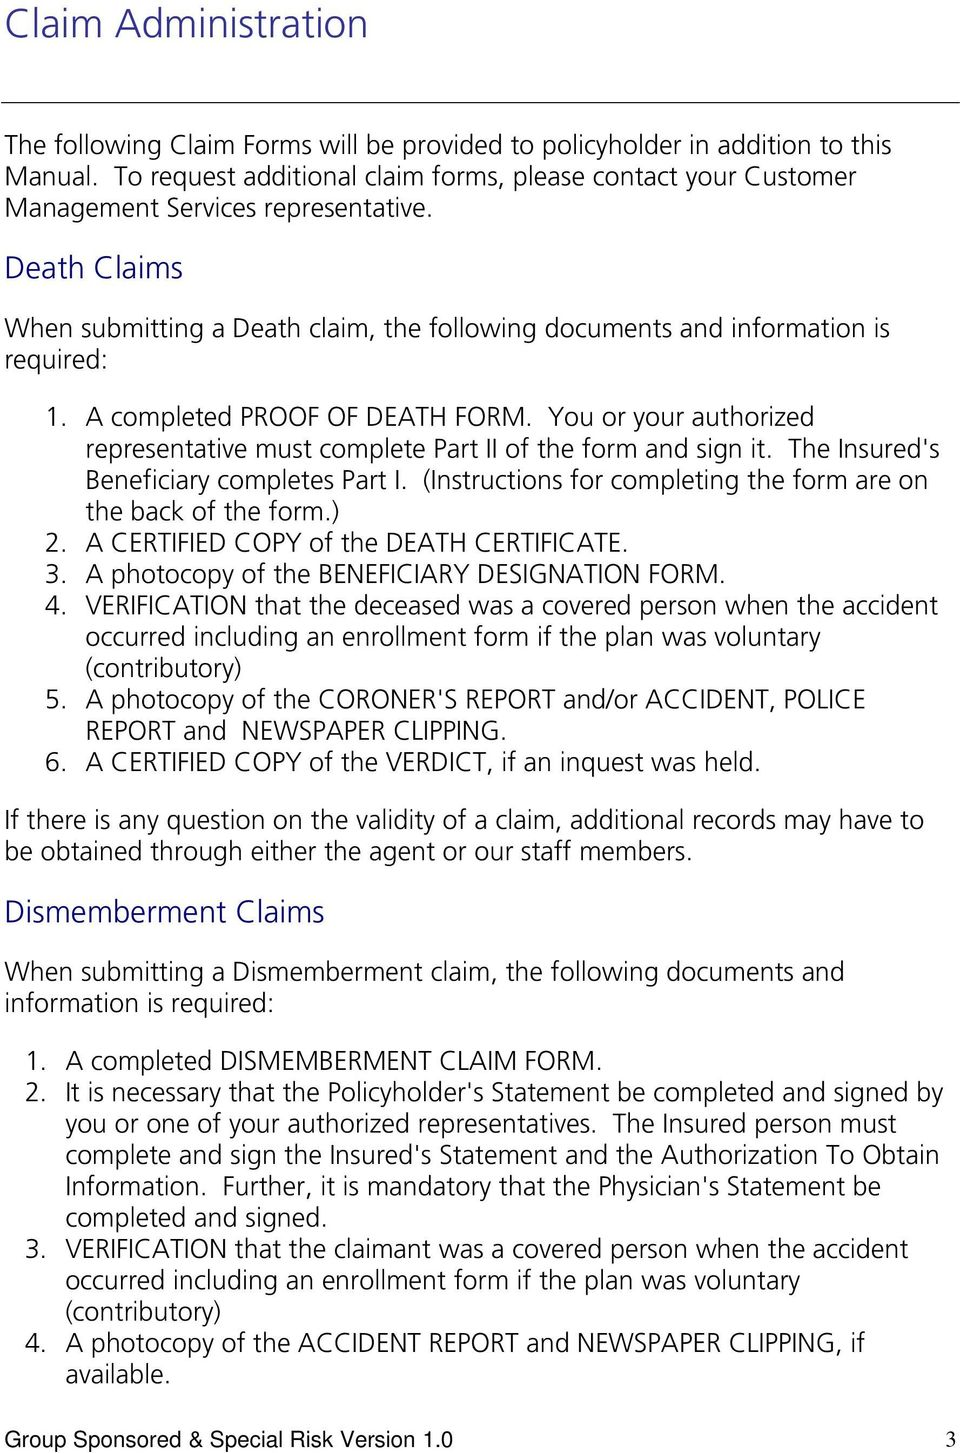 A completed PROOF OF DEATH FORM. You or your authorized representative must complete Part II of the form and sign it. The Insured's Beneficiary completes Part I.